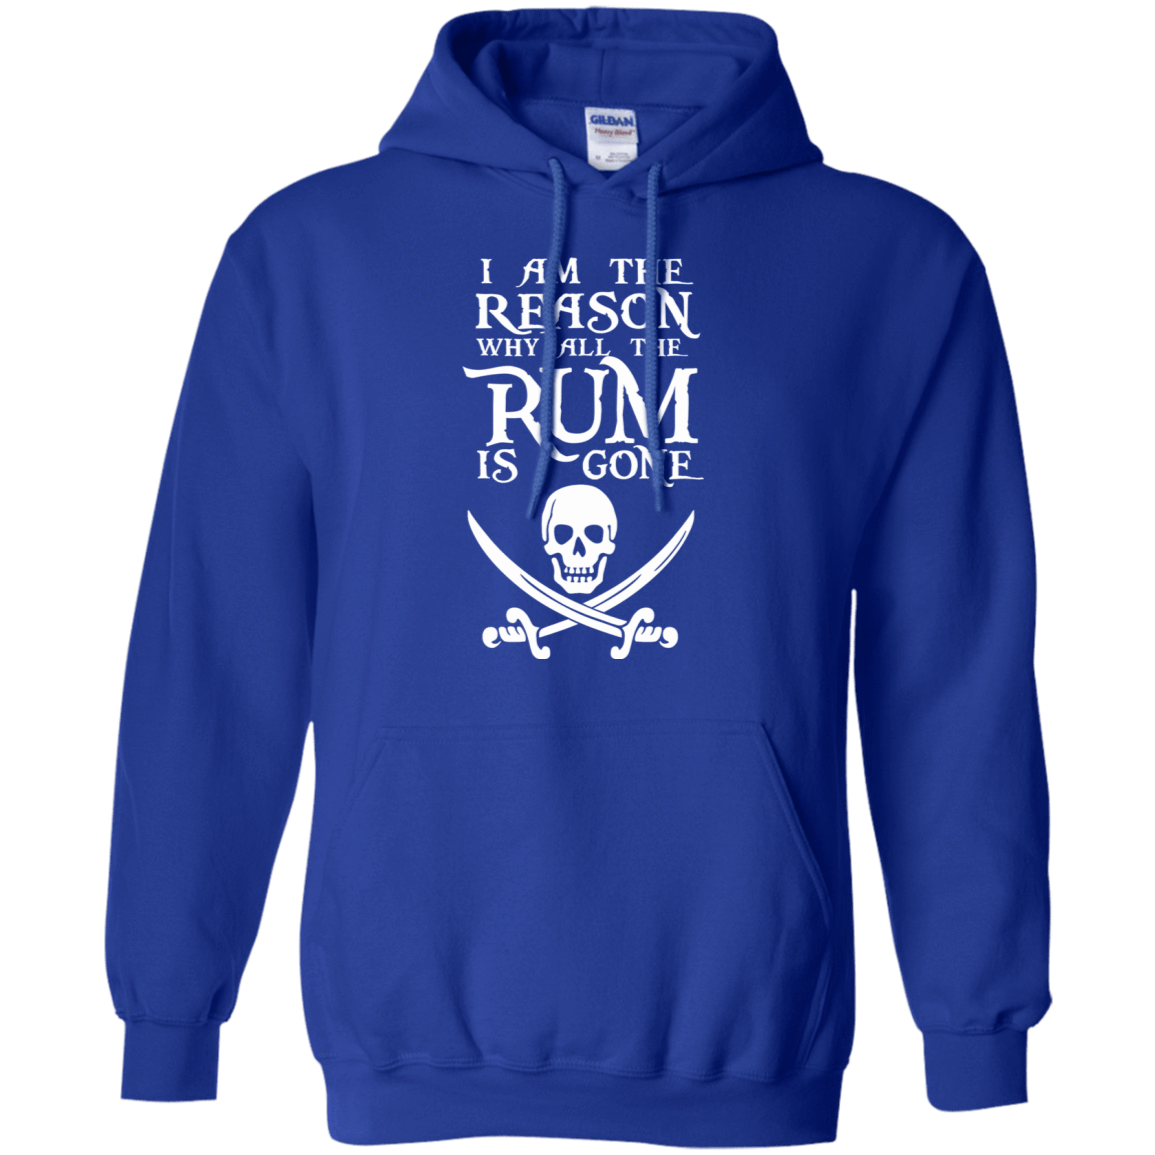 I Am The Reason Why All The Rum Is Gone 541-4765-73425465-23175 - Tee Ript